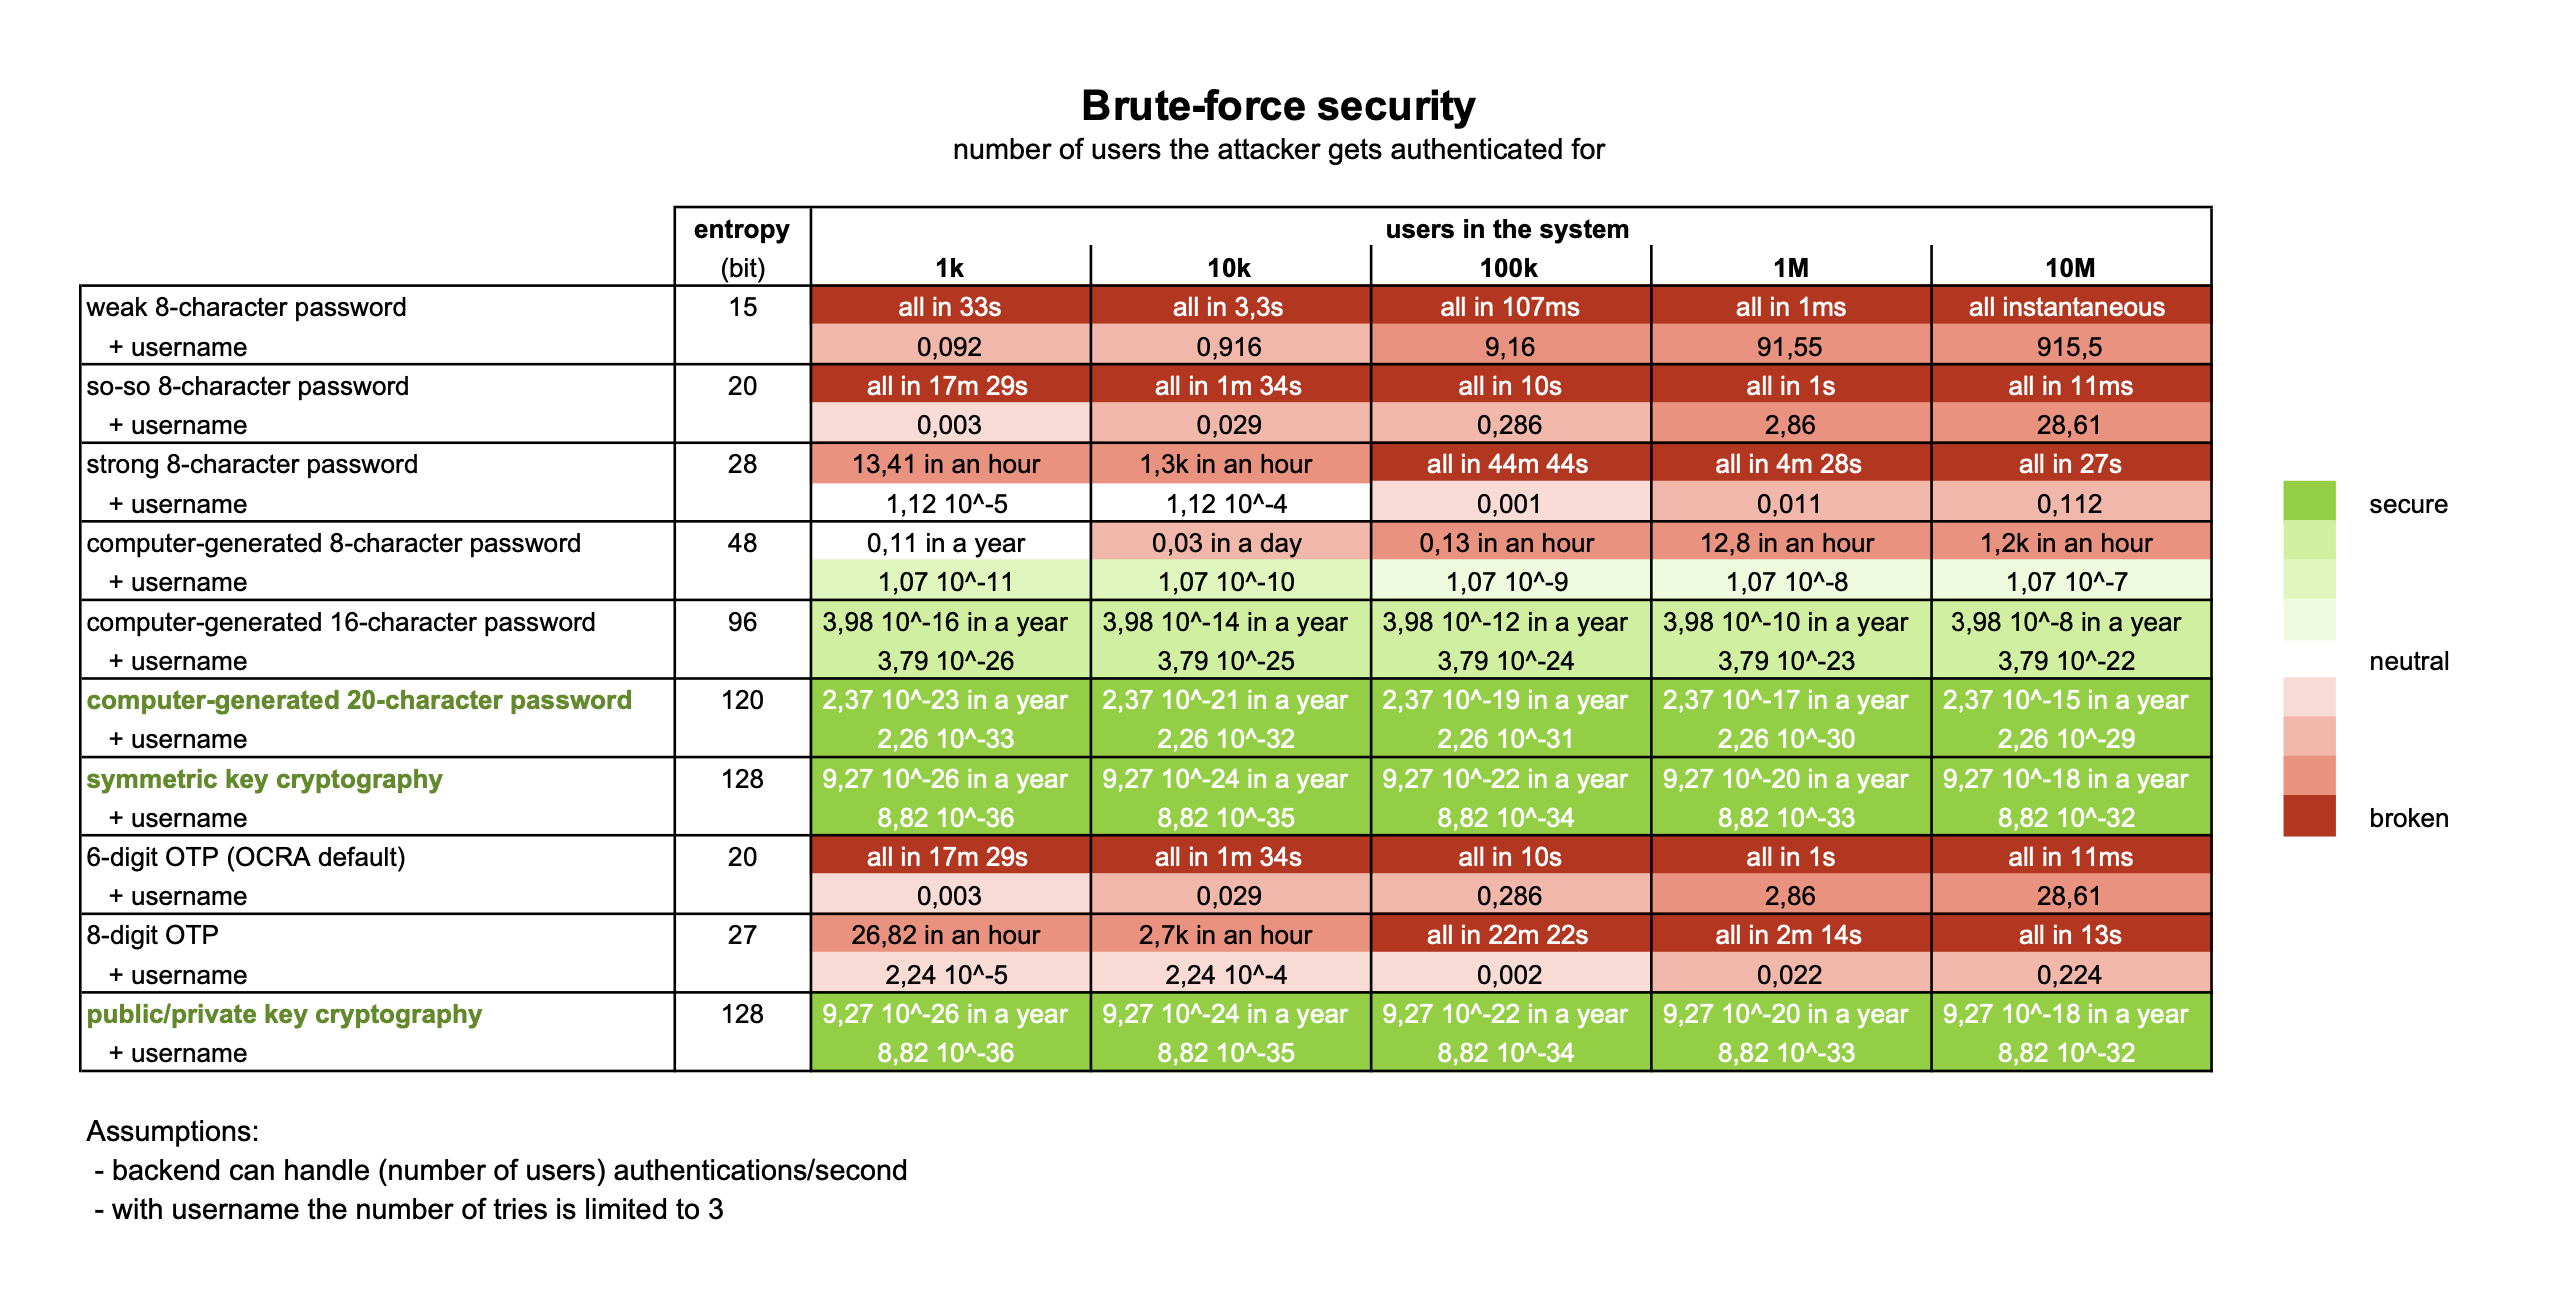 Brute-force security